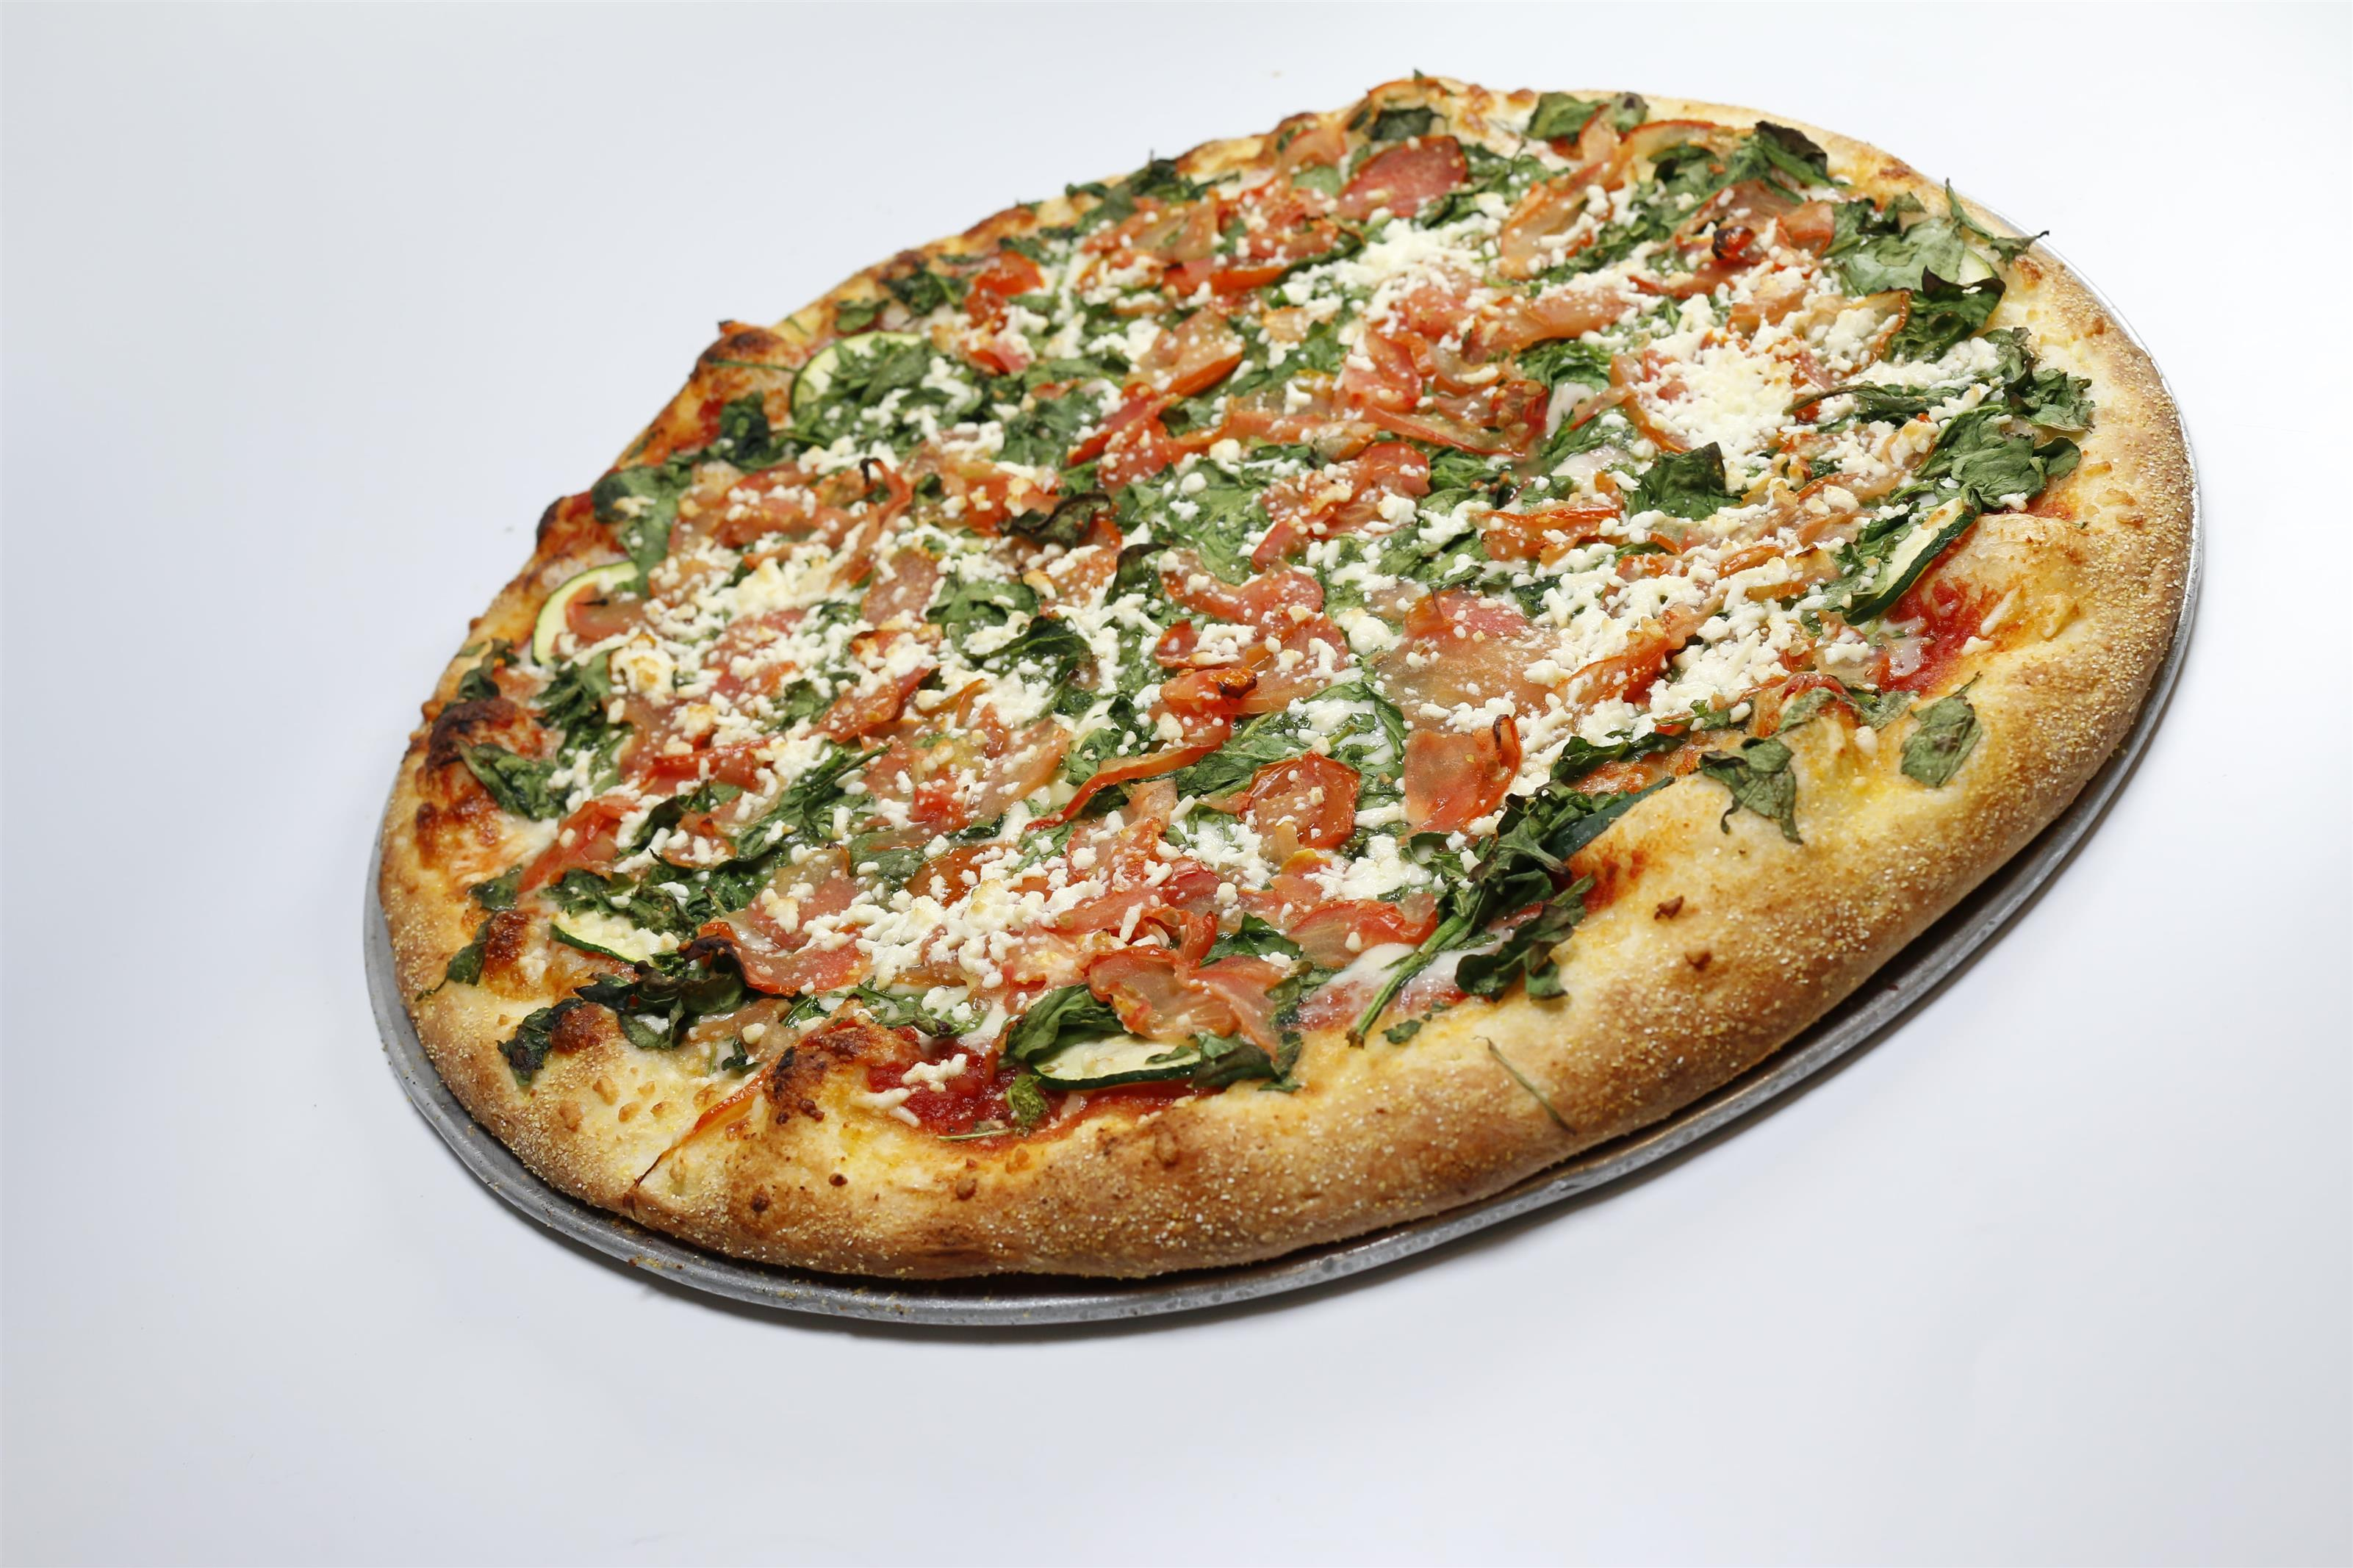 Margharita pizza with tomatos, feta cheese, and shredded basil